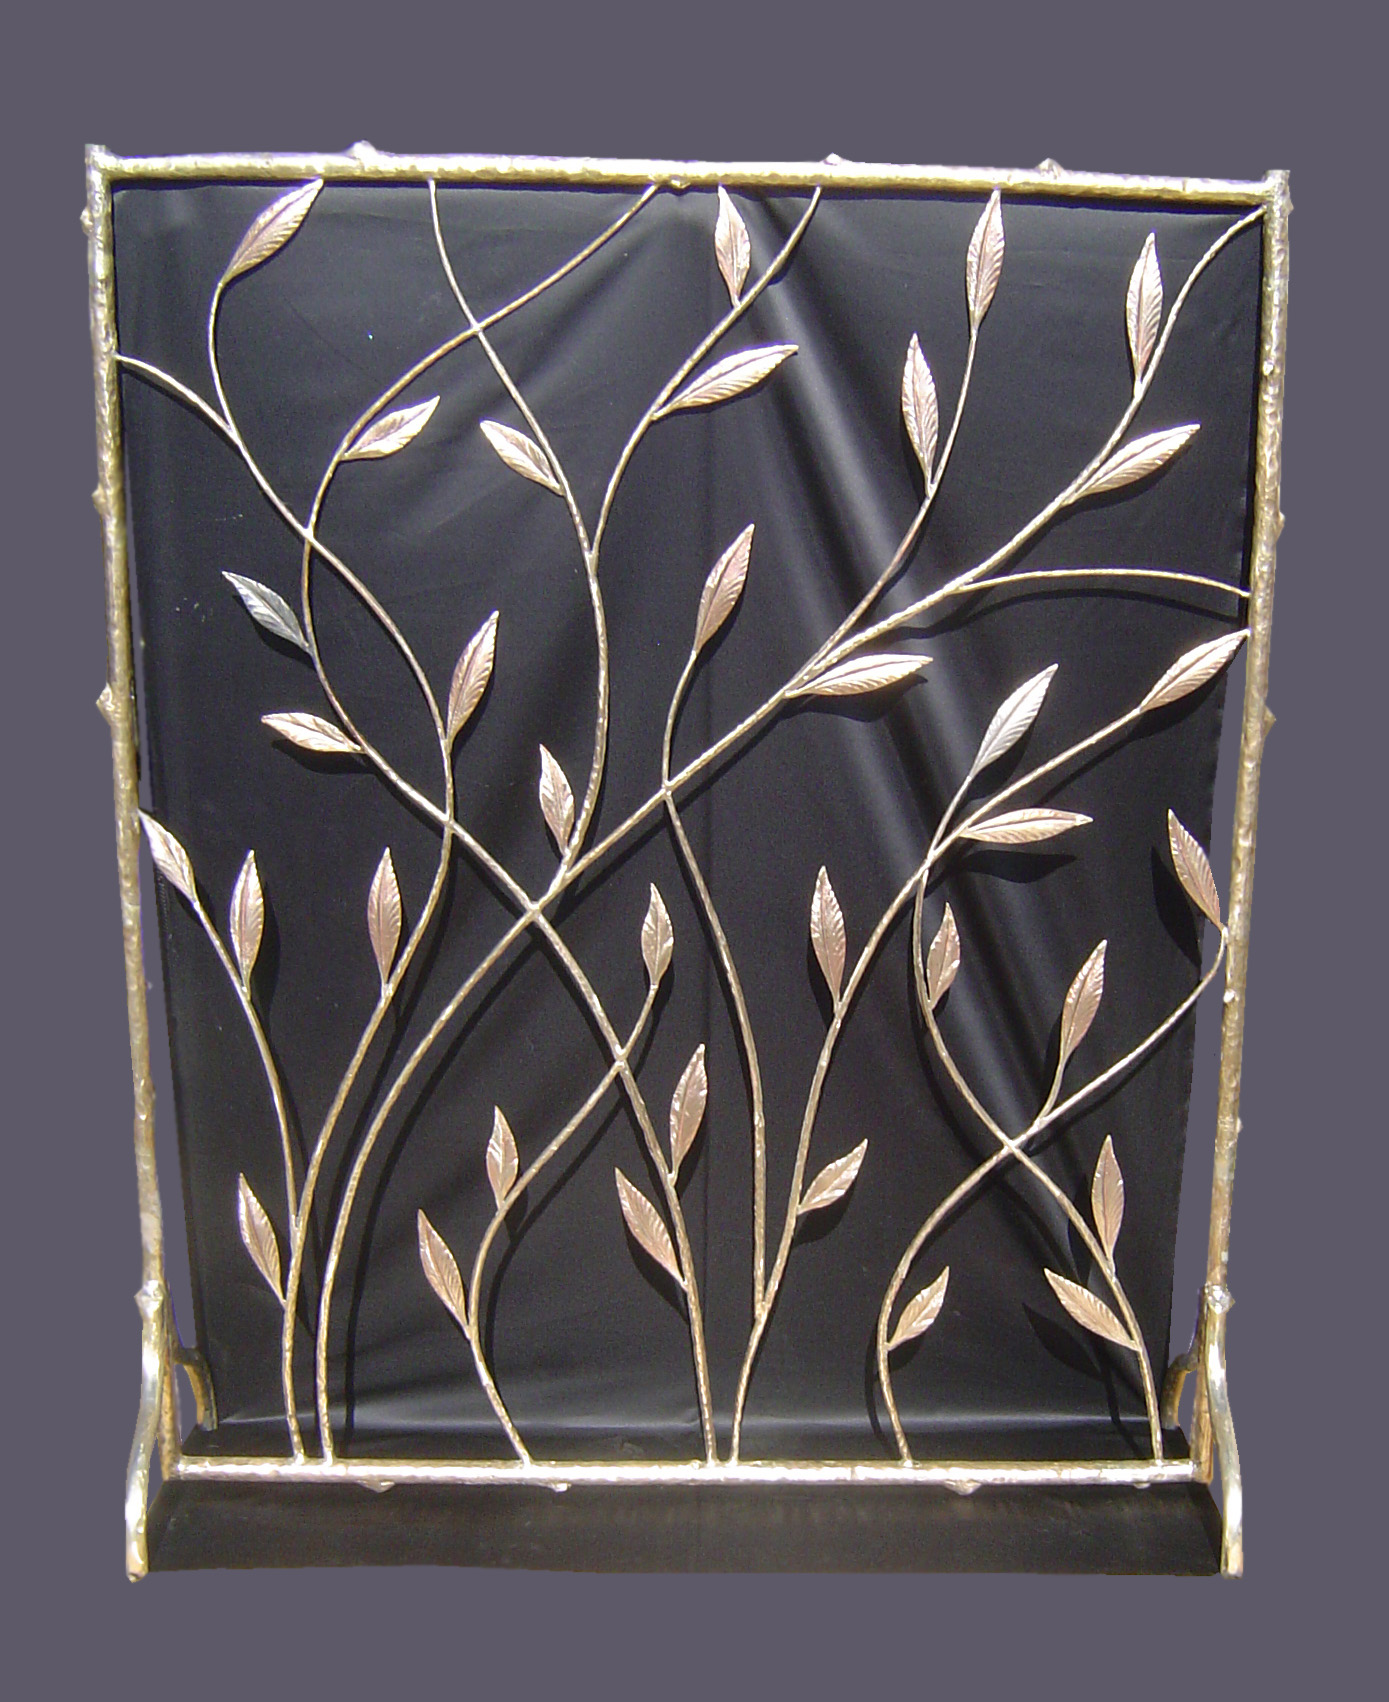 Decorative metal panels sheet metal suppliers near me customized metal window mesh screen and - Decorative metal wall art panels ...